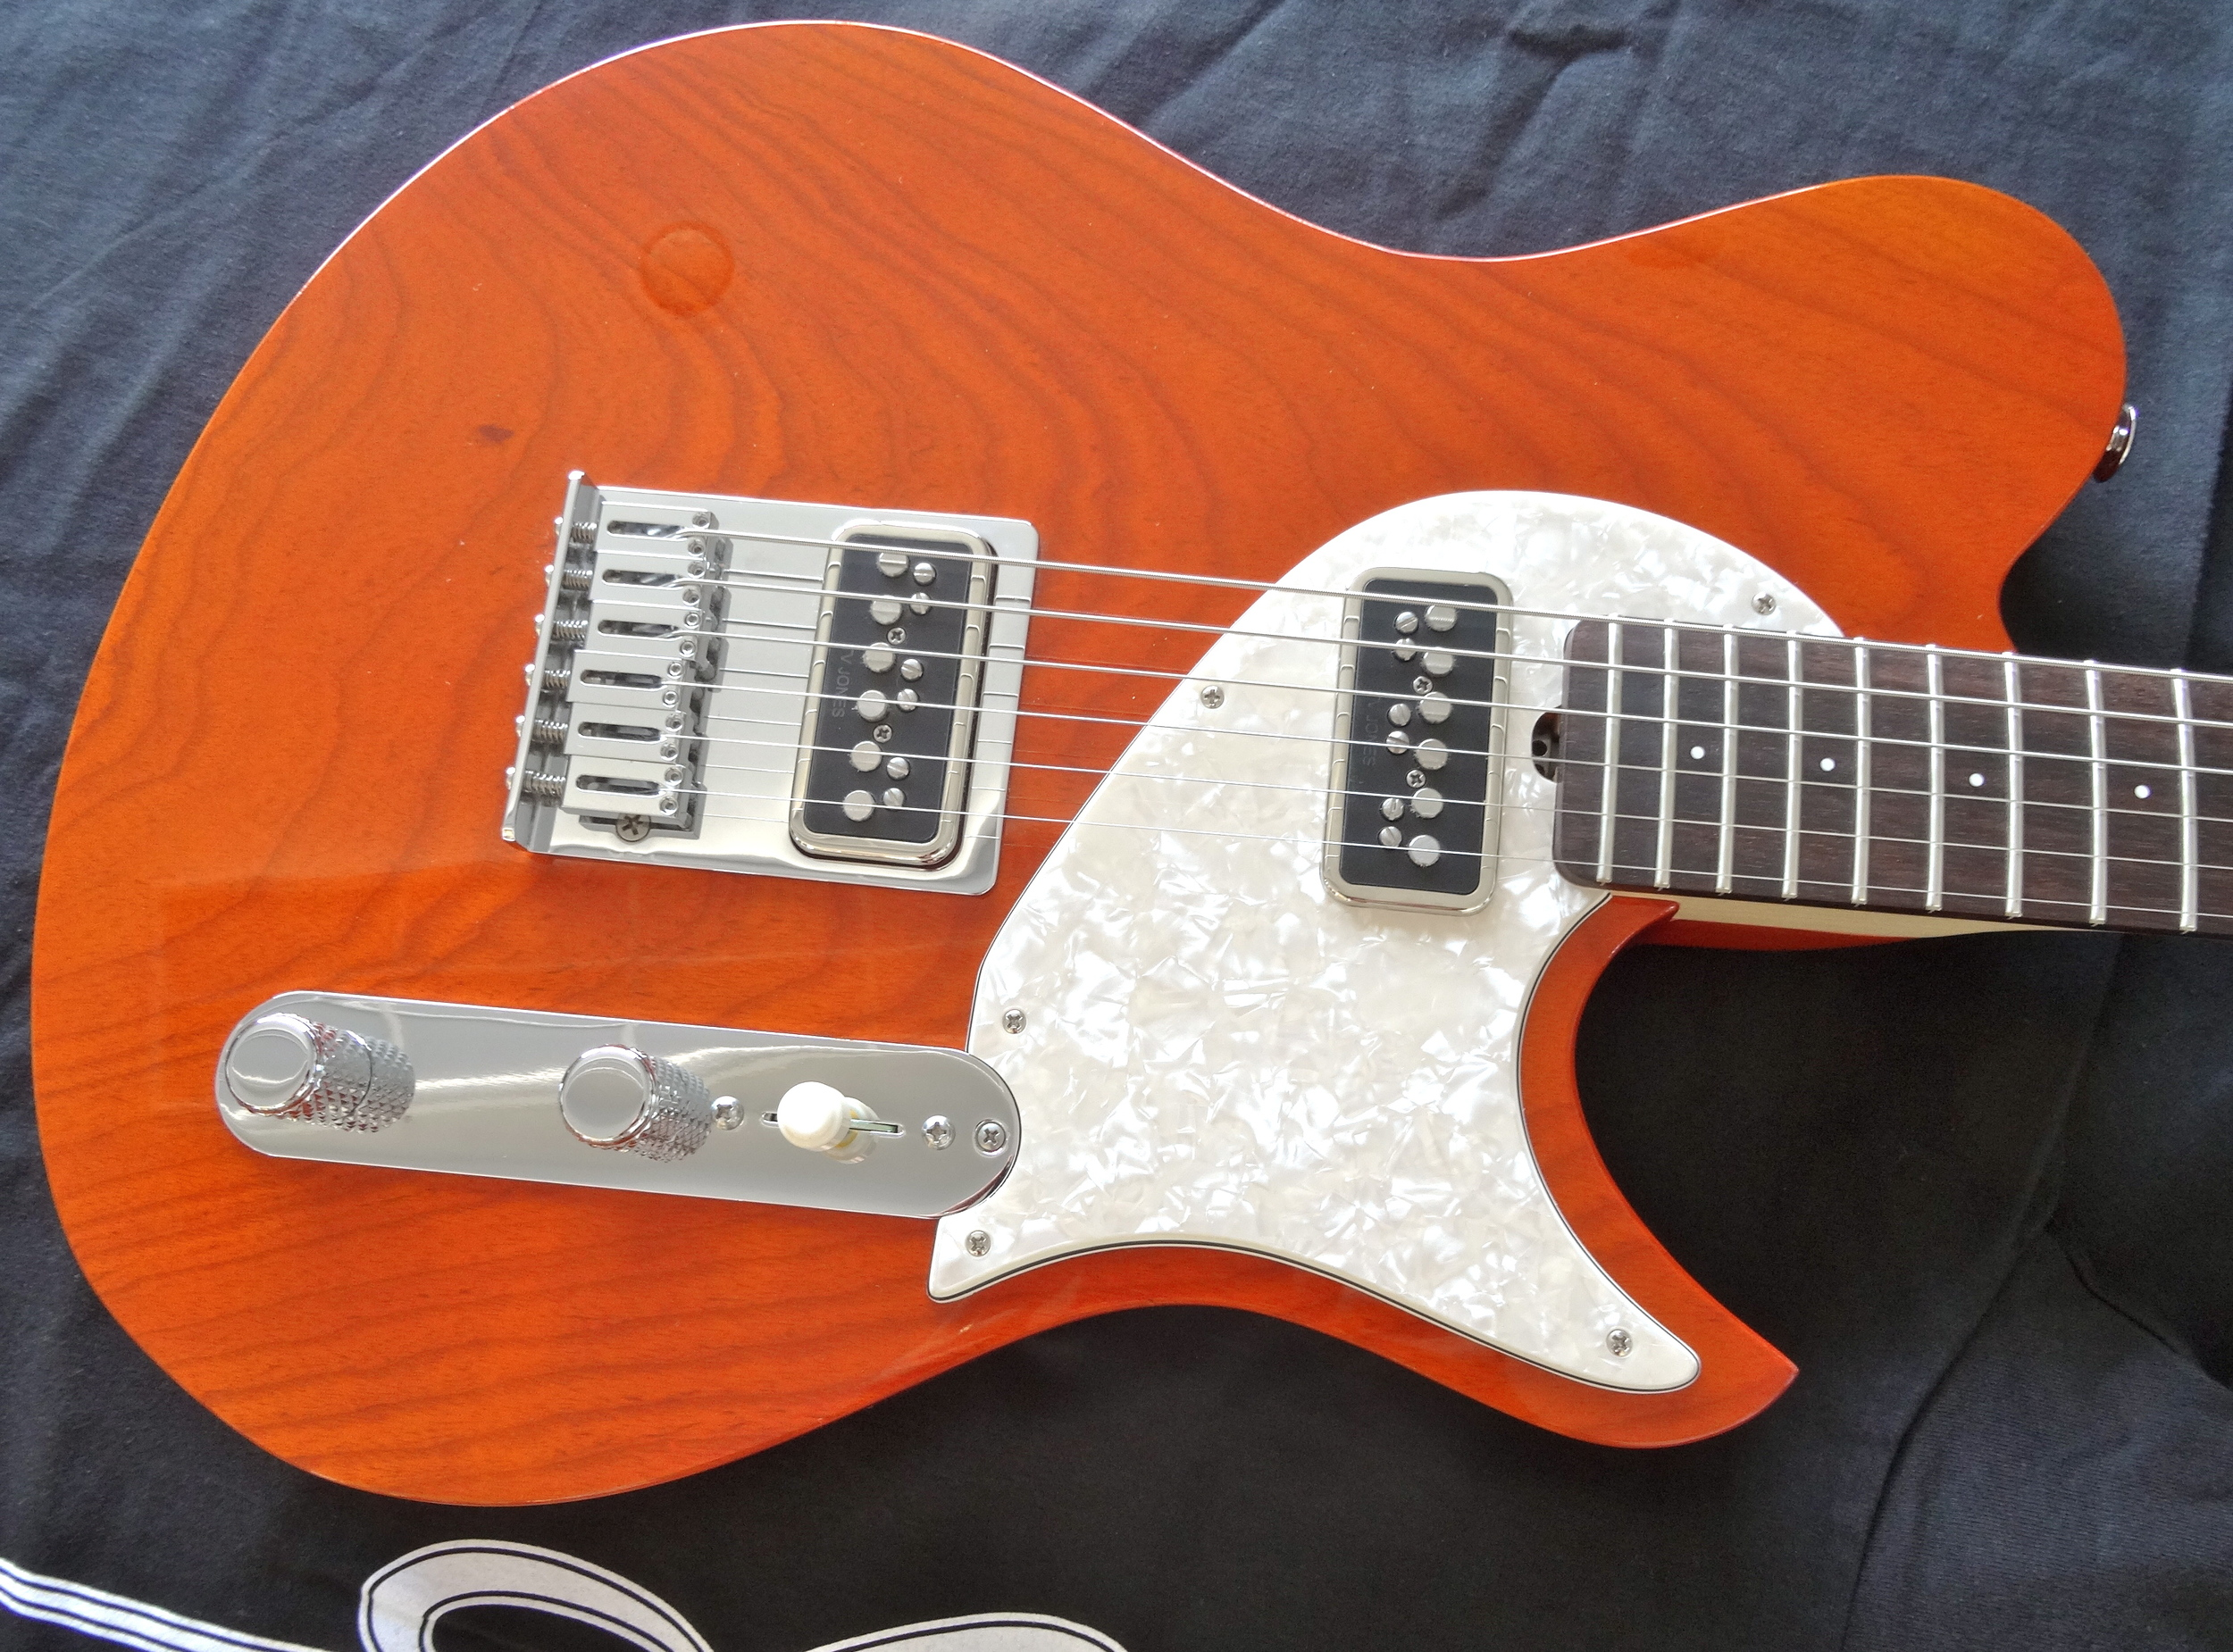 The TV Jones T-Armond single coil pickups are amazing on this guitar.